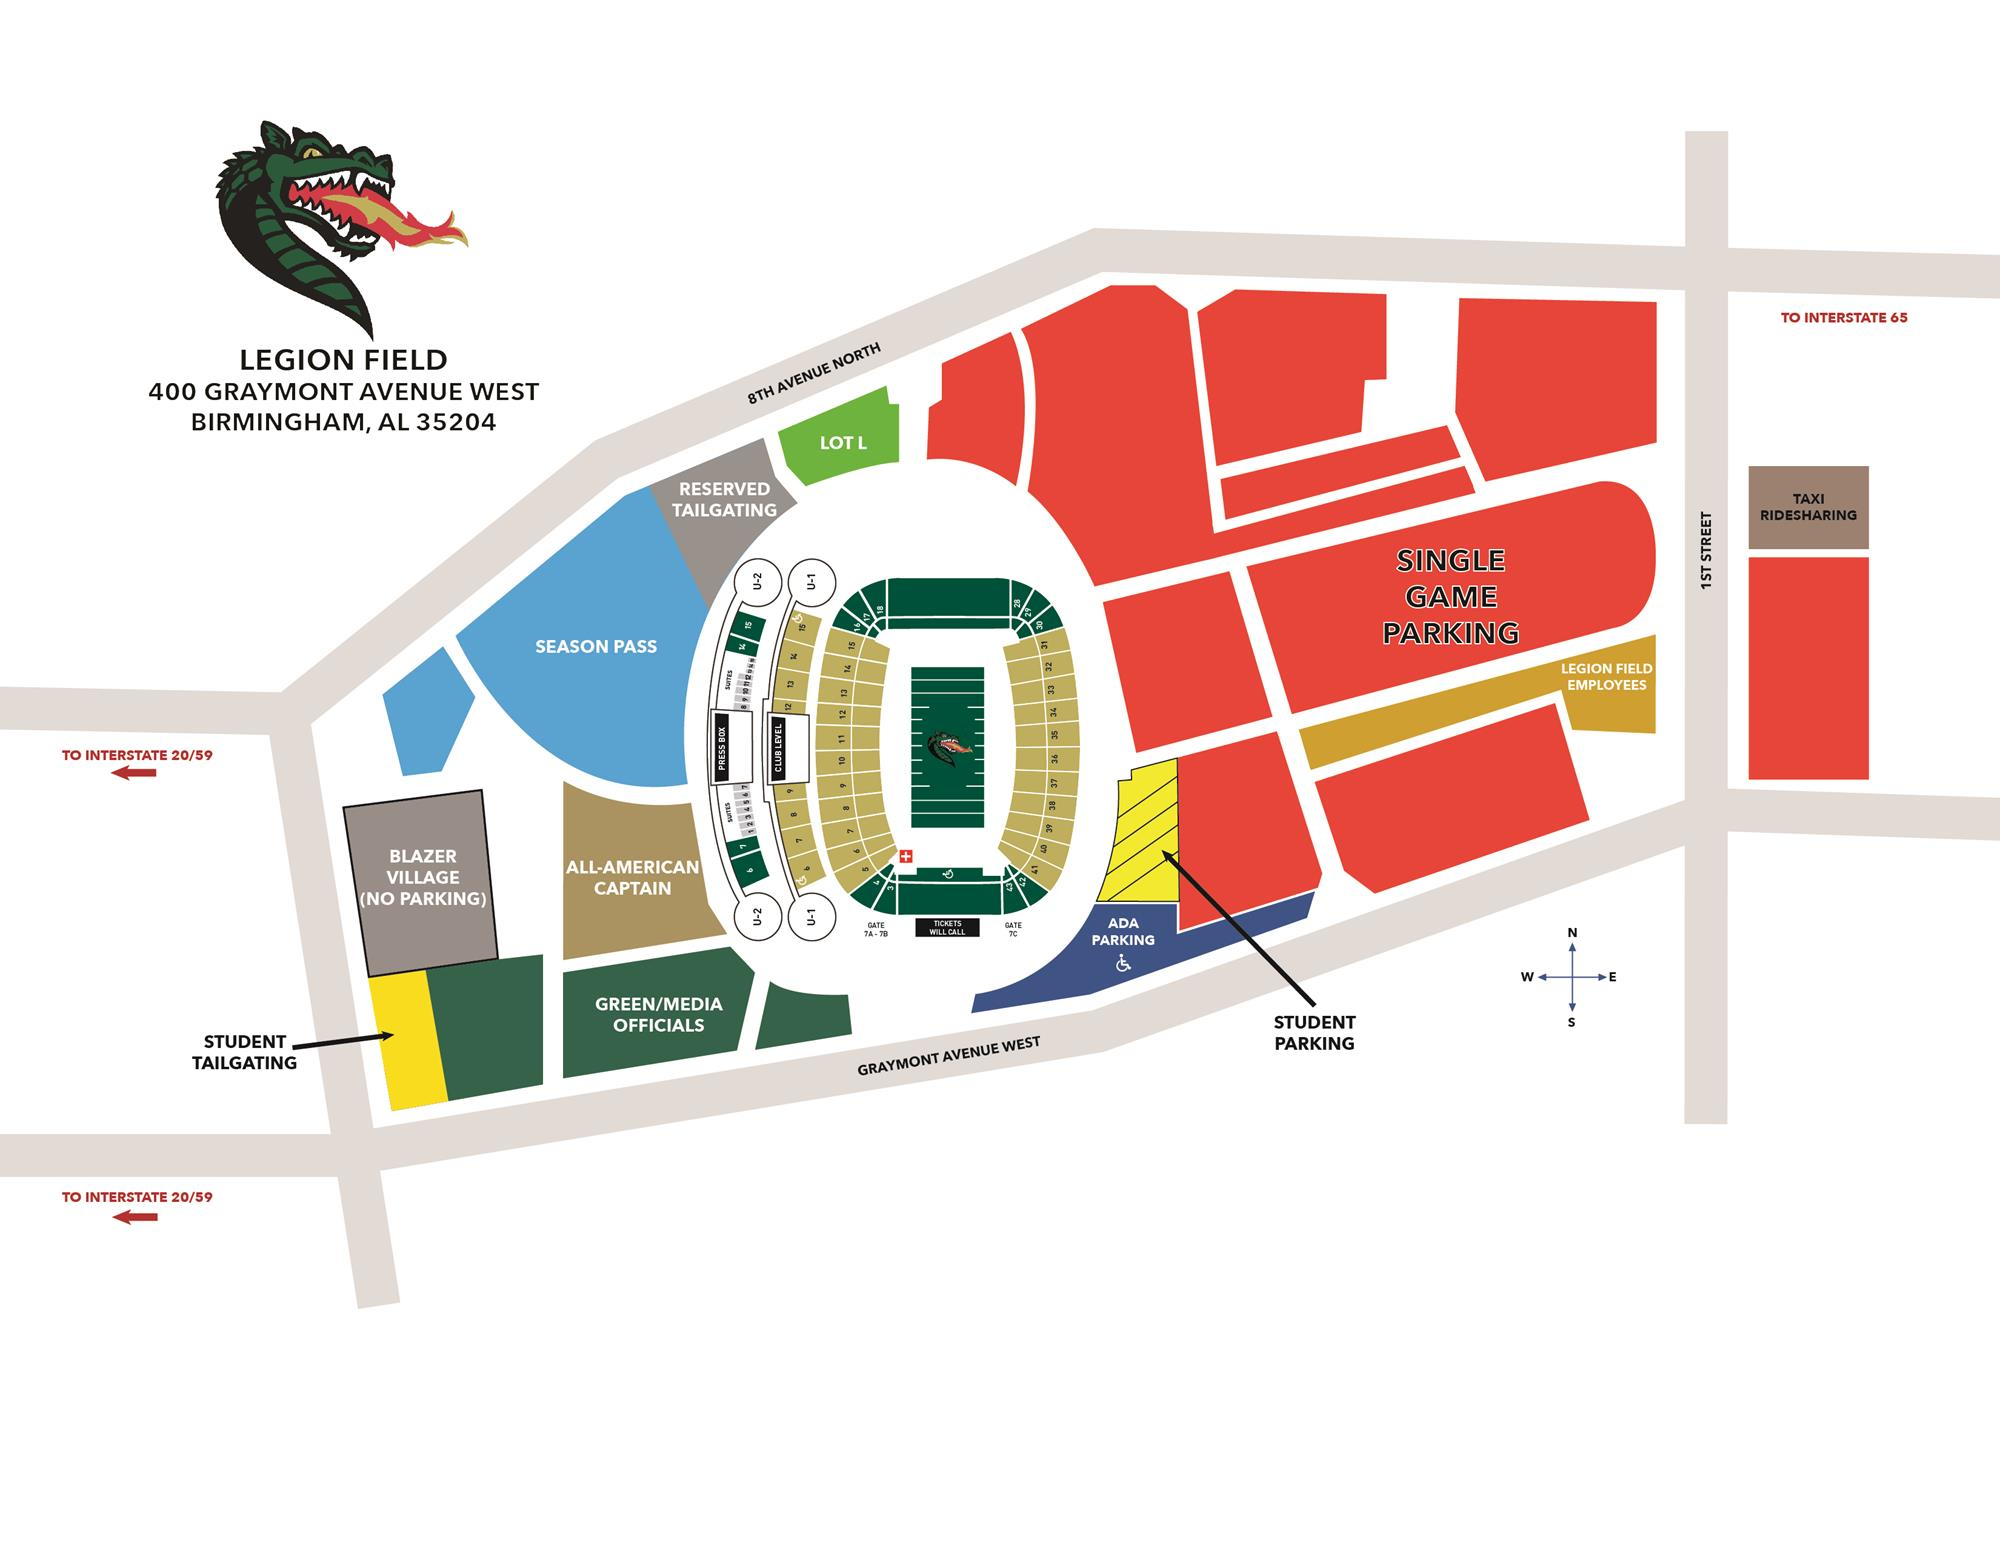 UAB Announces Fan Experience Enhancements for Football Games ... on texas a&m football parking map, university of maryland football parking map, university of tennessee parking lot map, texas a&m parking lot map, dayton parking map, va tech parking map, northern iowa parking map, east carolina parking map, gonzaga parking map, xavier parking map, coastal carolina parking map, app state parking map, illinois state parking map, university of alabama parking map, lincoln memorial stadium parking map, south alabama parking map, west virginia parking map, u of m parking map, towson parking map, murray state parking map,